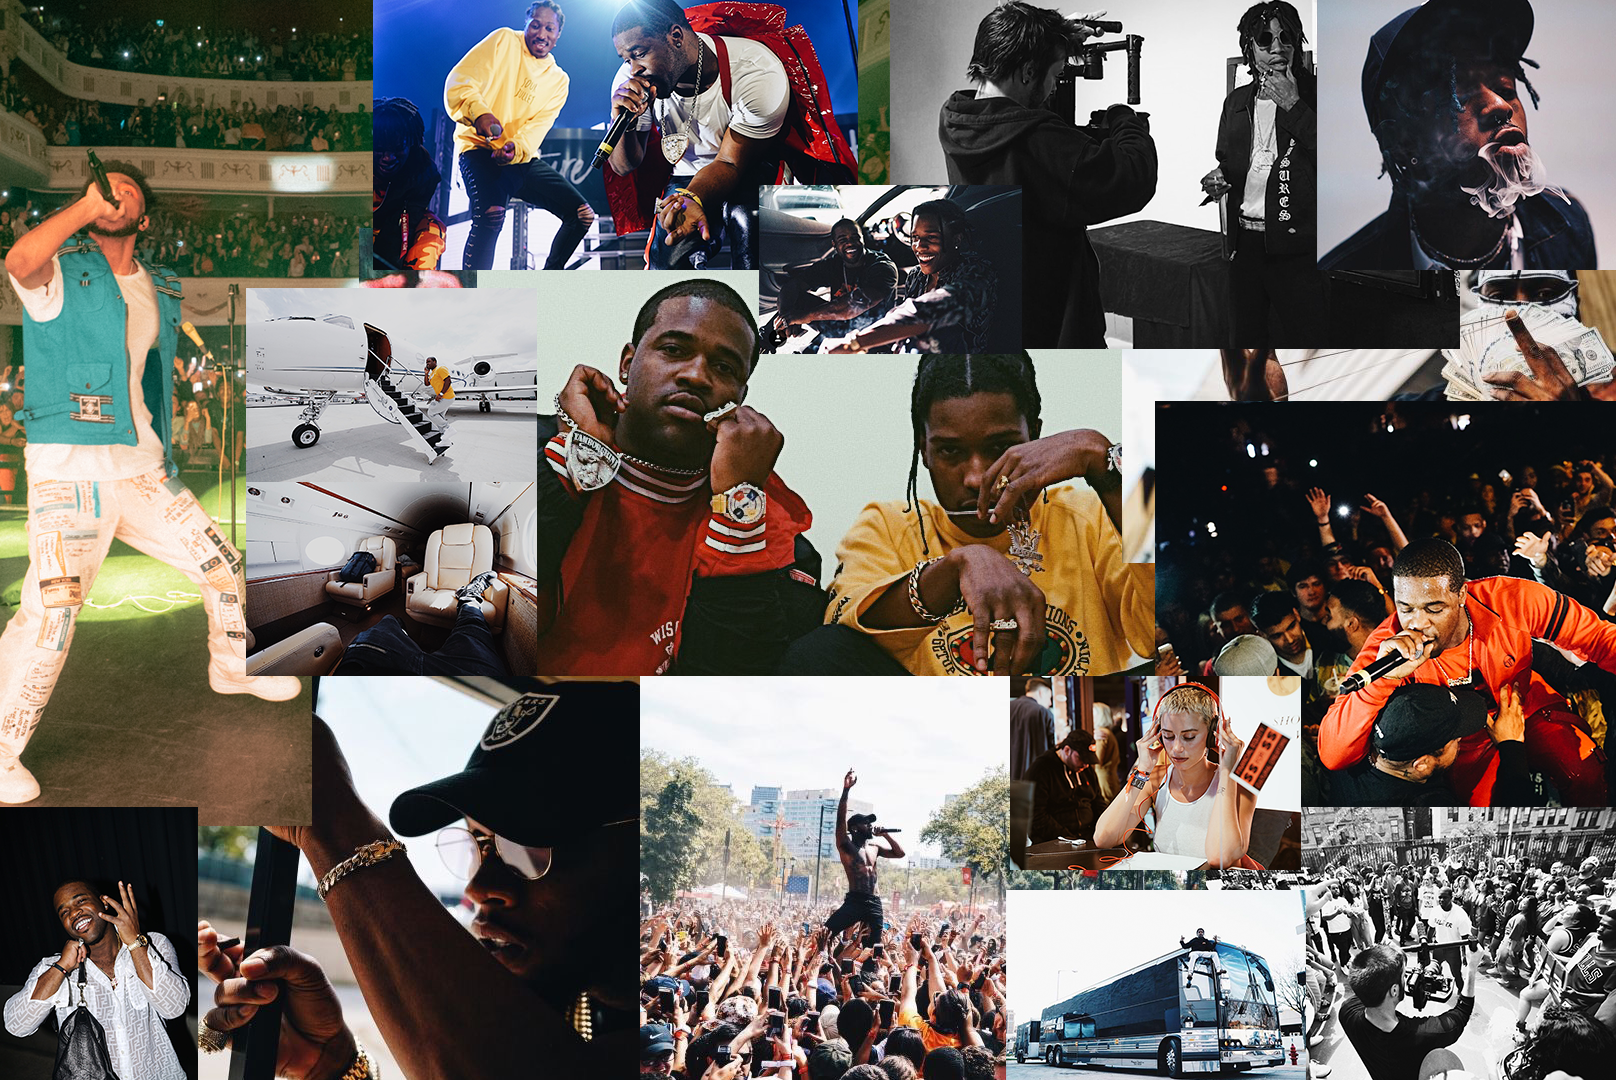 Visual arts - Since being founded in 2013, GURU BLUE LLC has directed & edited hundreds of music videos, documentaries, commercials, & tour videos for artists & companies across the globe. Clients include Tory Lanez, A$AP Ferg, Amine, Atlantic Records, Lil Uzi Vert, Meek Mill, RCA Records, Def Jam, Adidas, Margaritaville, YesJulz, & more. Check out some portfolio highlights below.lyricsandlines@gmail.com // @GuruBlue.co